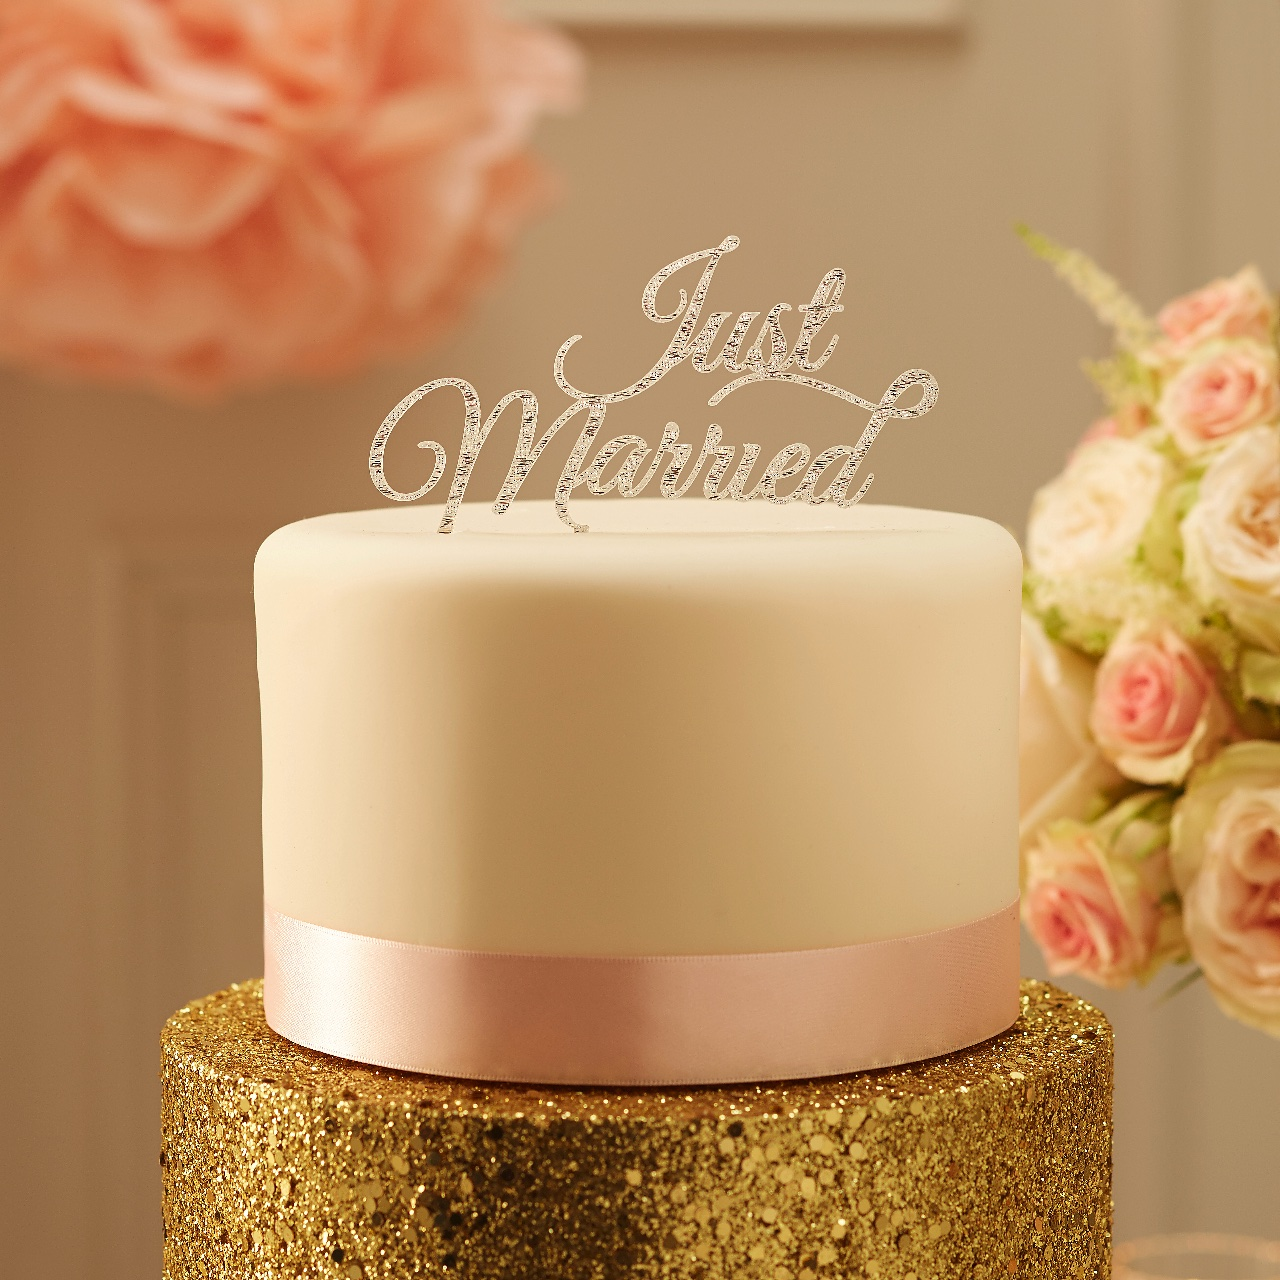 PP-610 Just Married Cake Topper - Silver